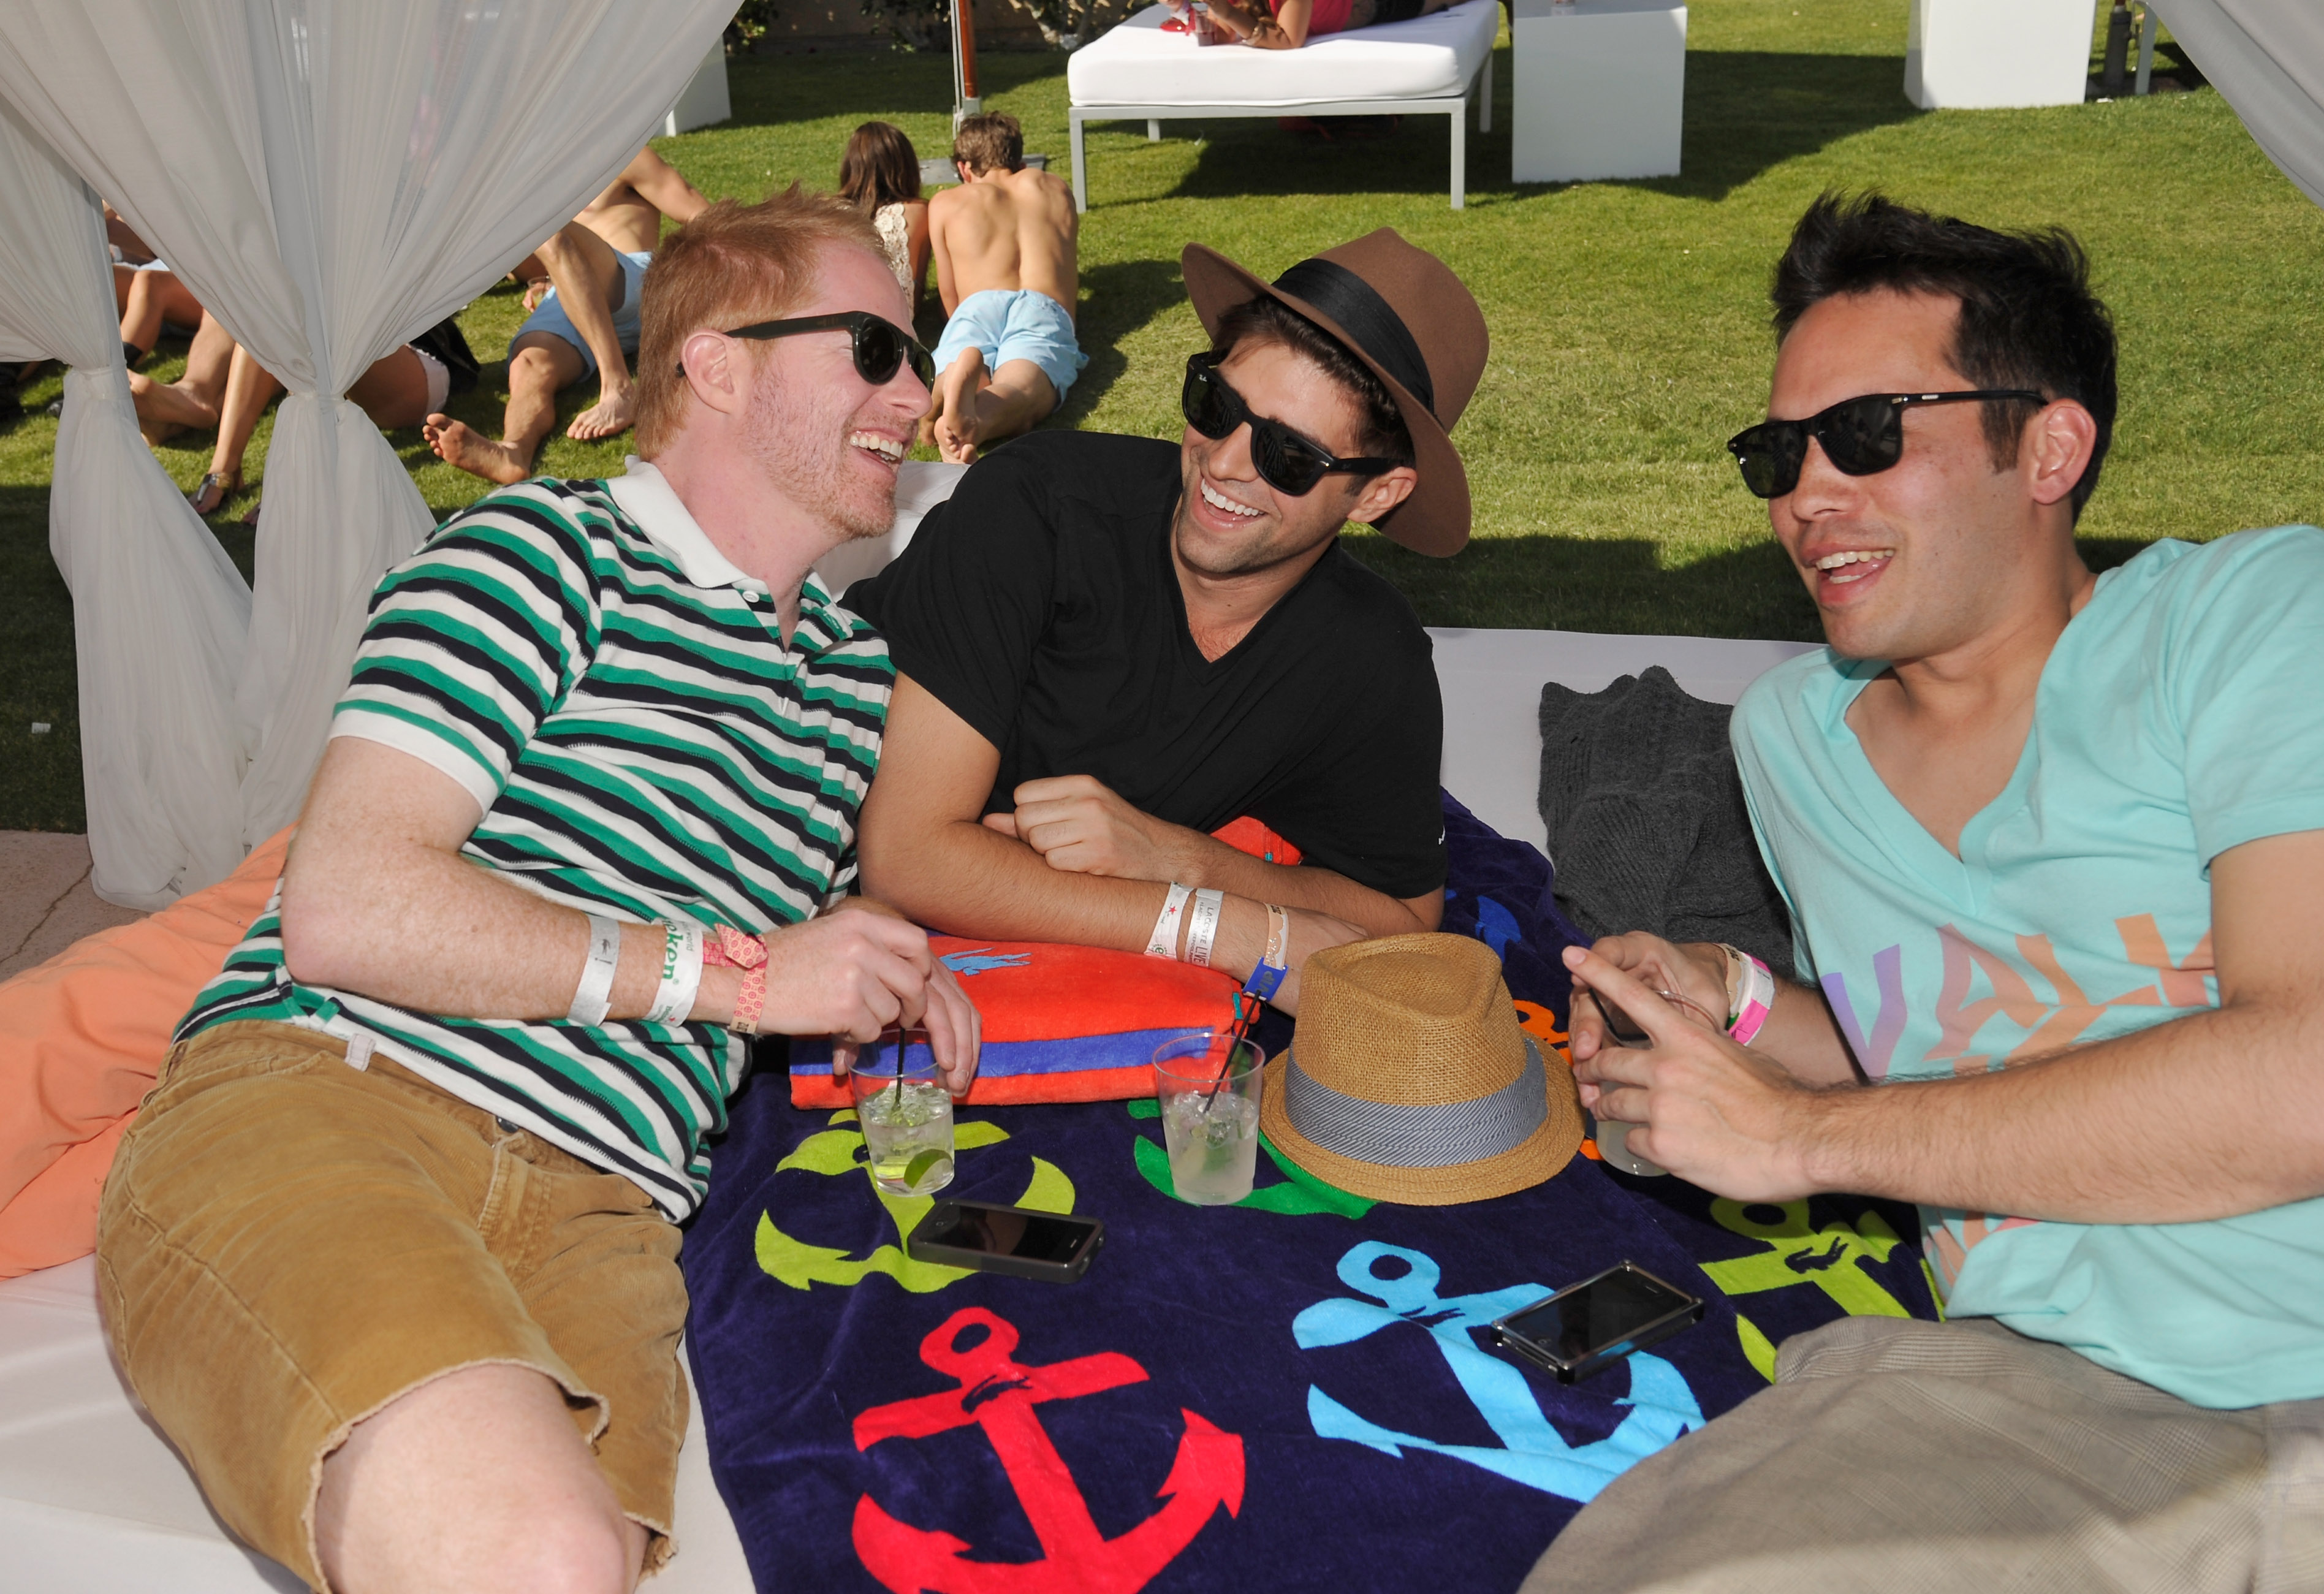 Jesse Tyler Ferguson and his boyfriend Justin Mikita lounged poolside at Lacoste's party on Saturday.